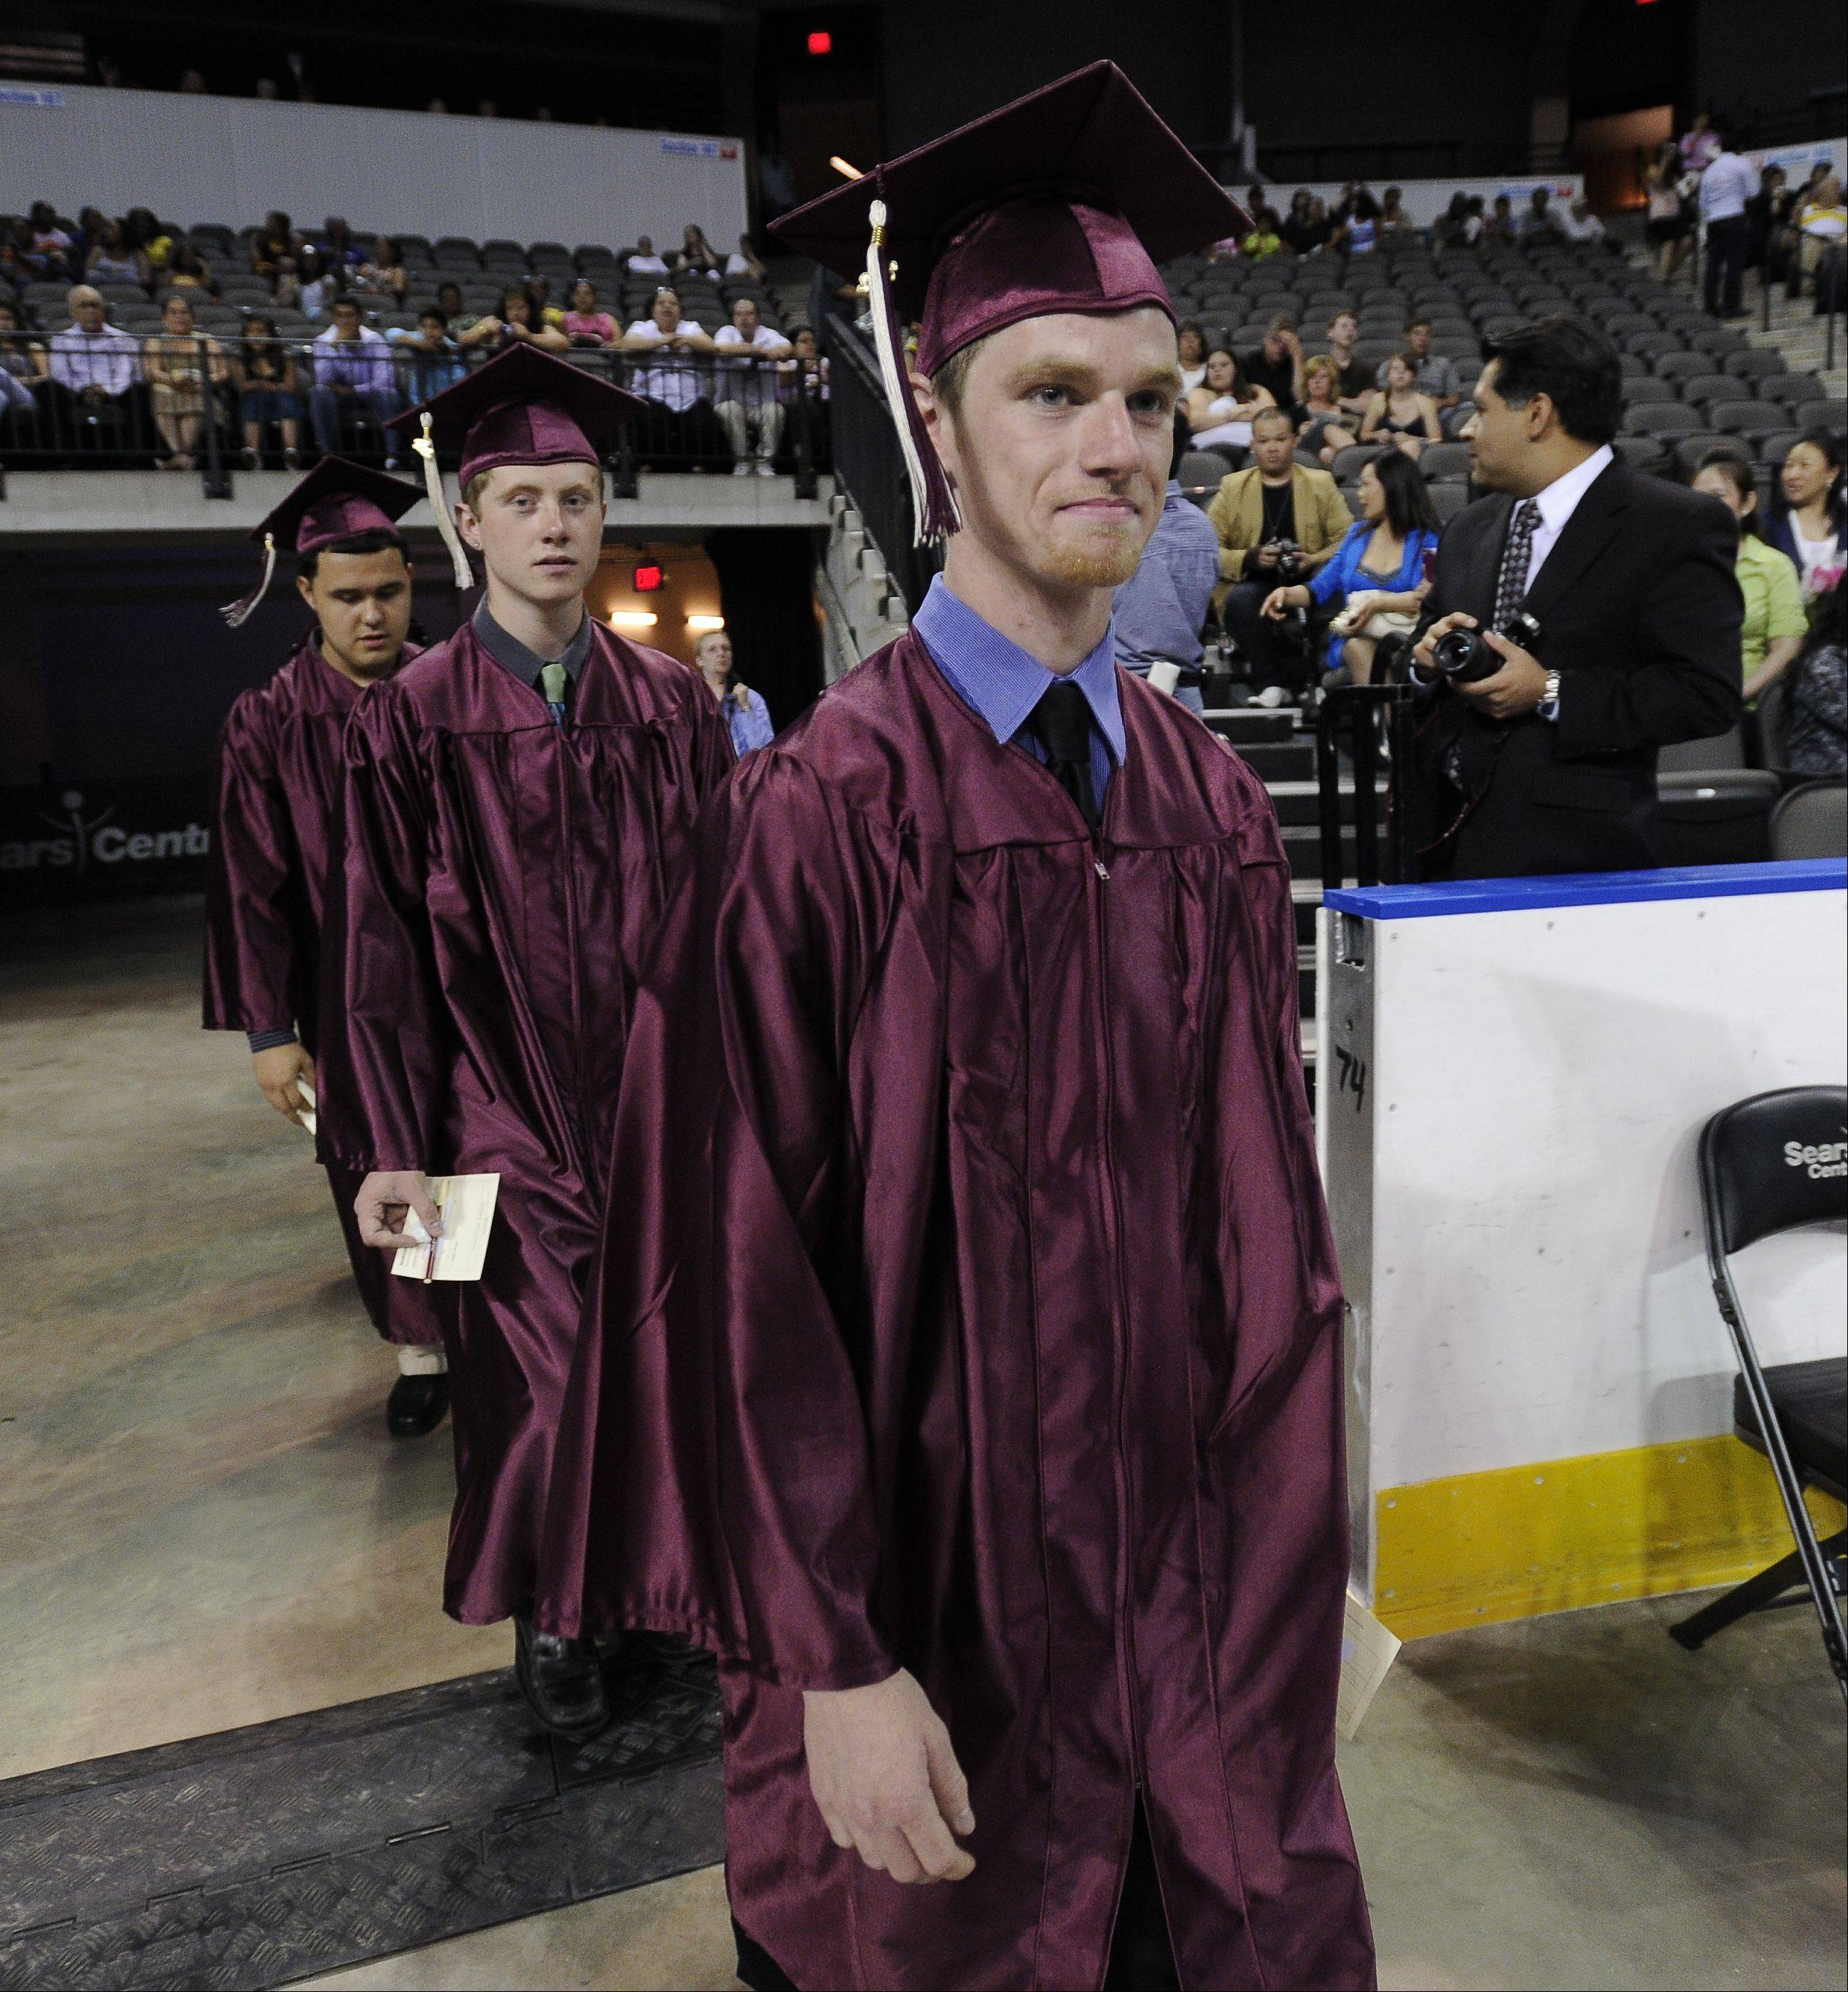 Images from the Elgin High School graduation Saturday, May 26, 2012 at the Sears Centre in Hoffman Estates.